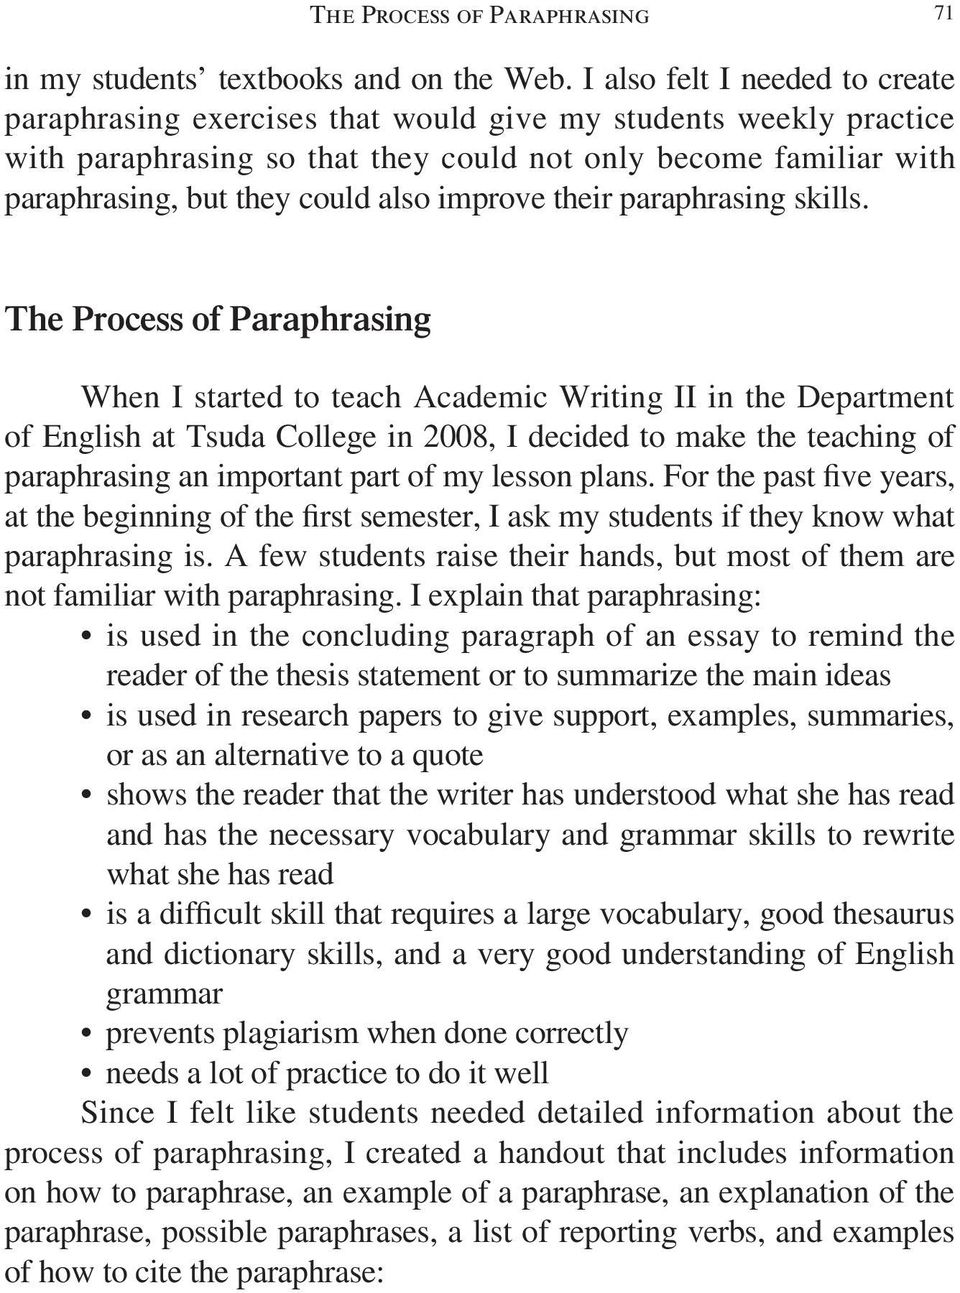 Paraphrasing in counseling academic writing pdf